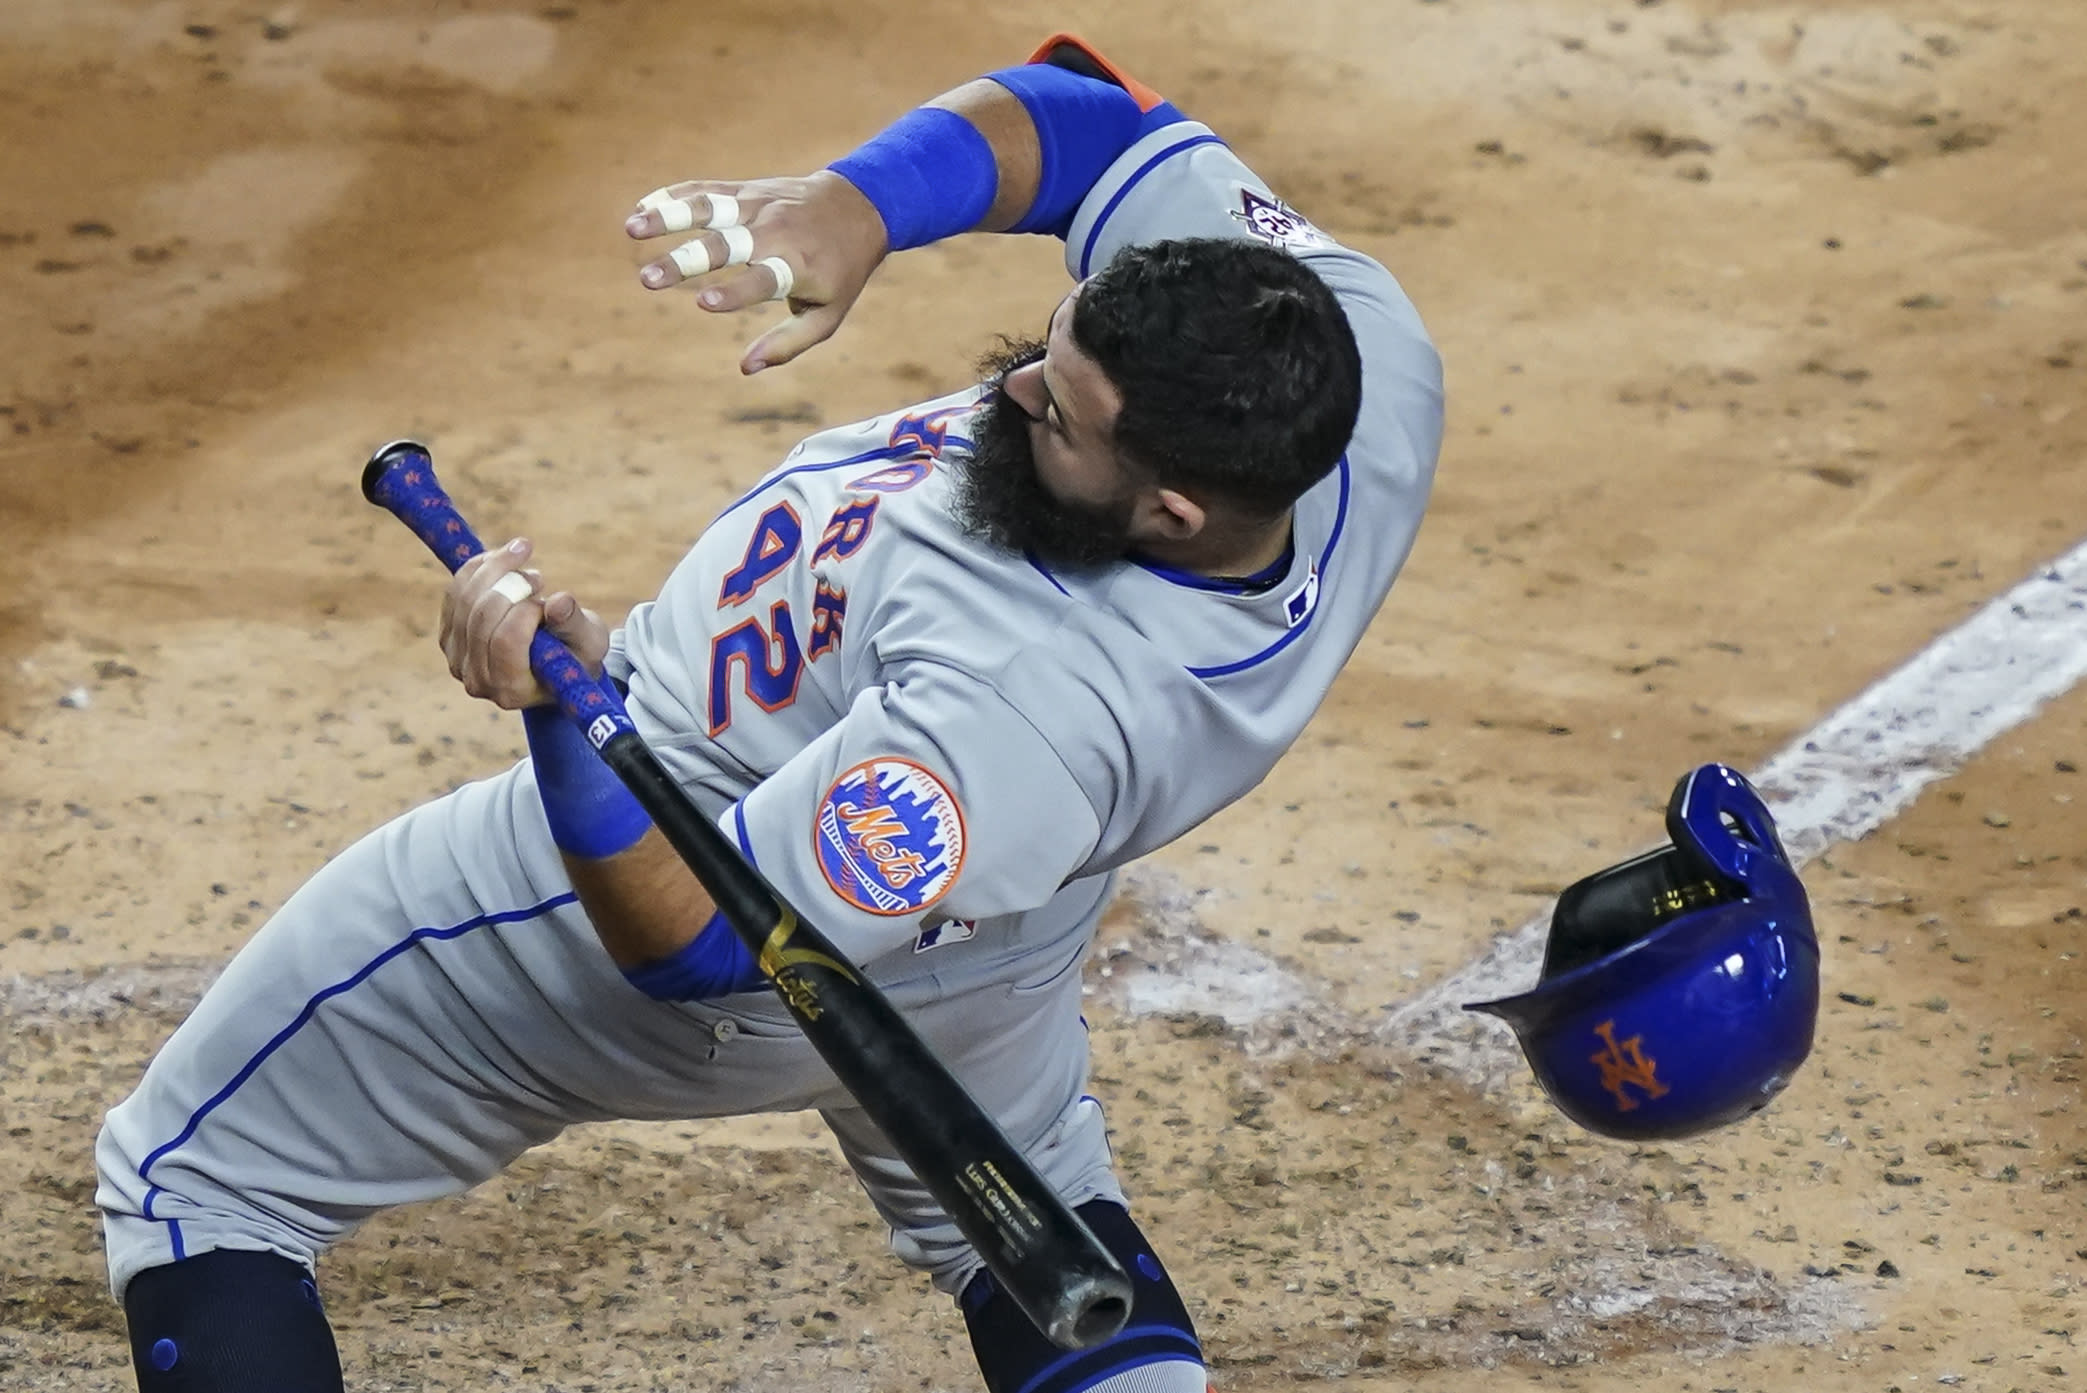 New York Mets' Luis Guillorme loses his helmet as he dodges a pitch from New York Yankees relief pitcher Nick Nelson in the fifth inning of the second baseball game of a doubleheader, Friday, Aug. 28, 2020, in New York. (AP Photo/John Minchillo)